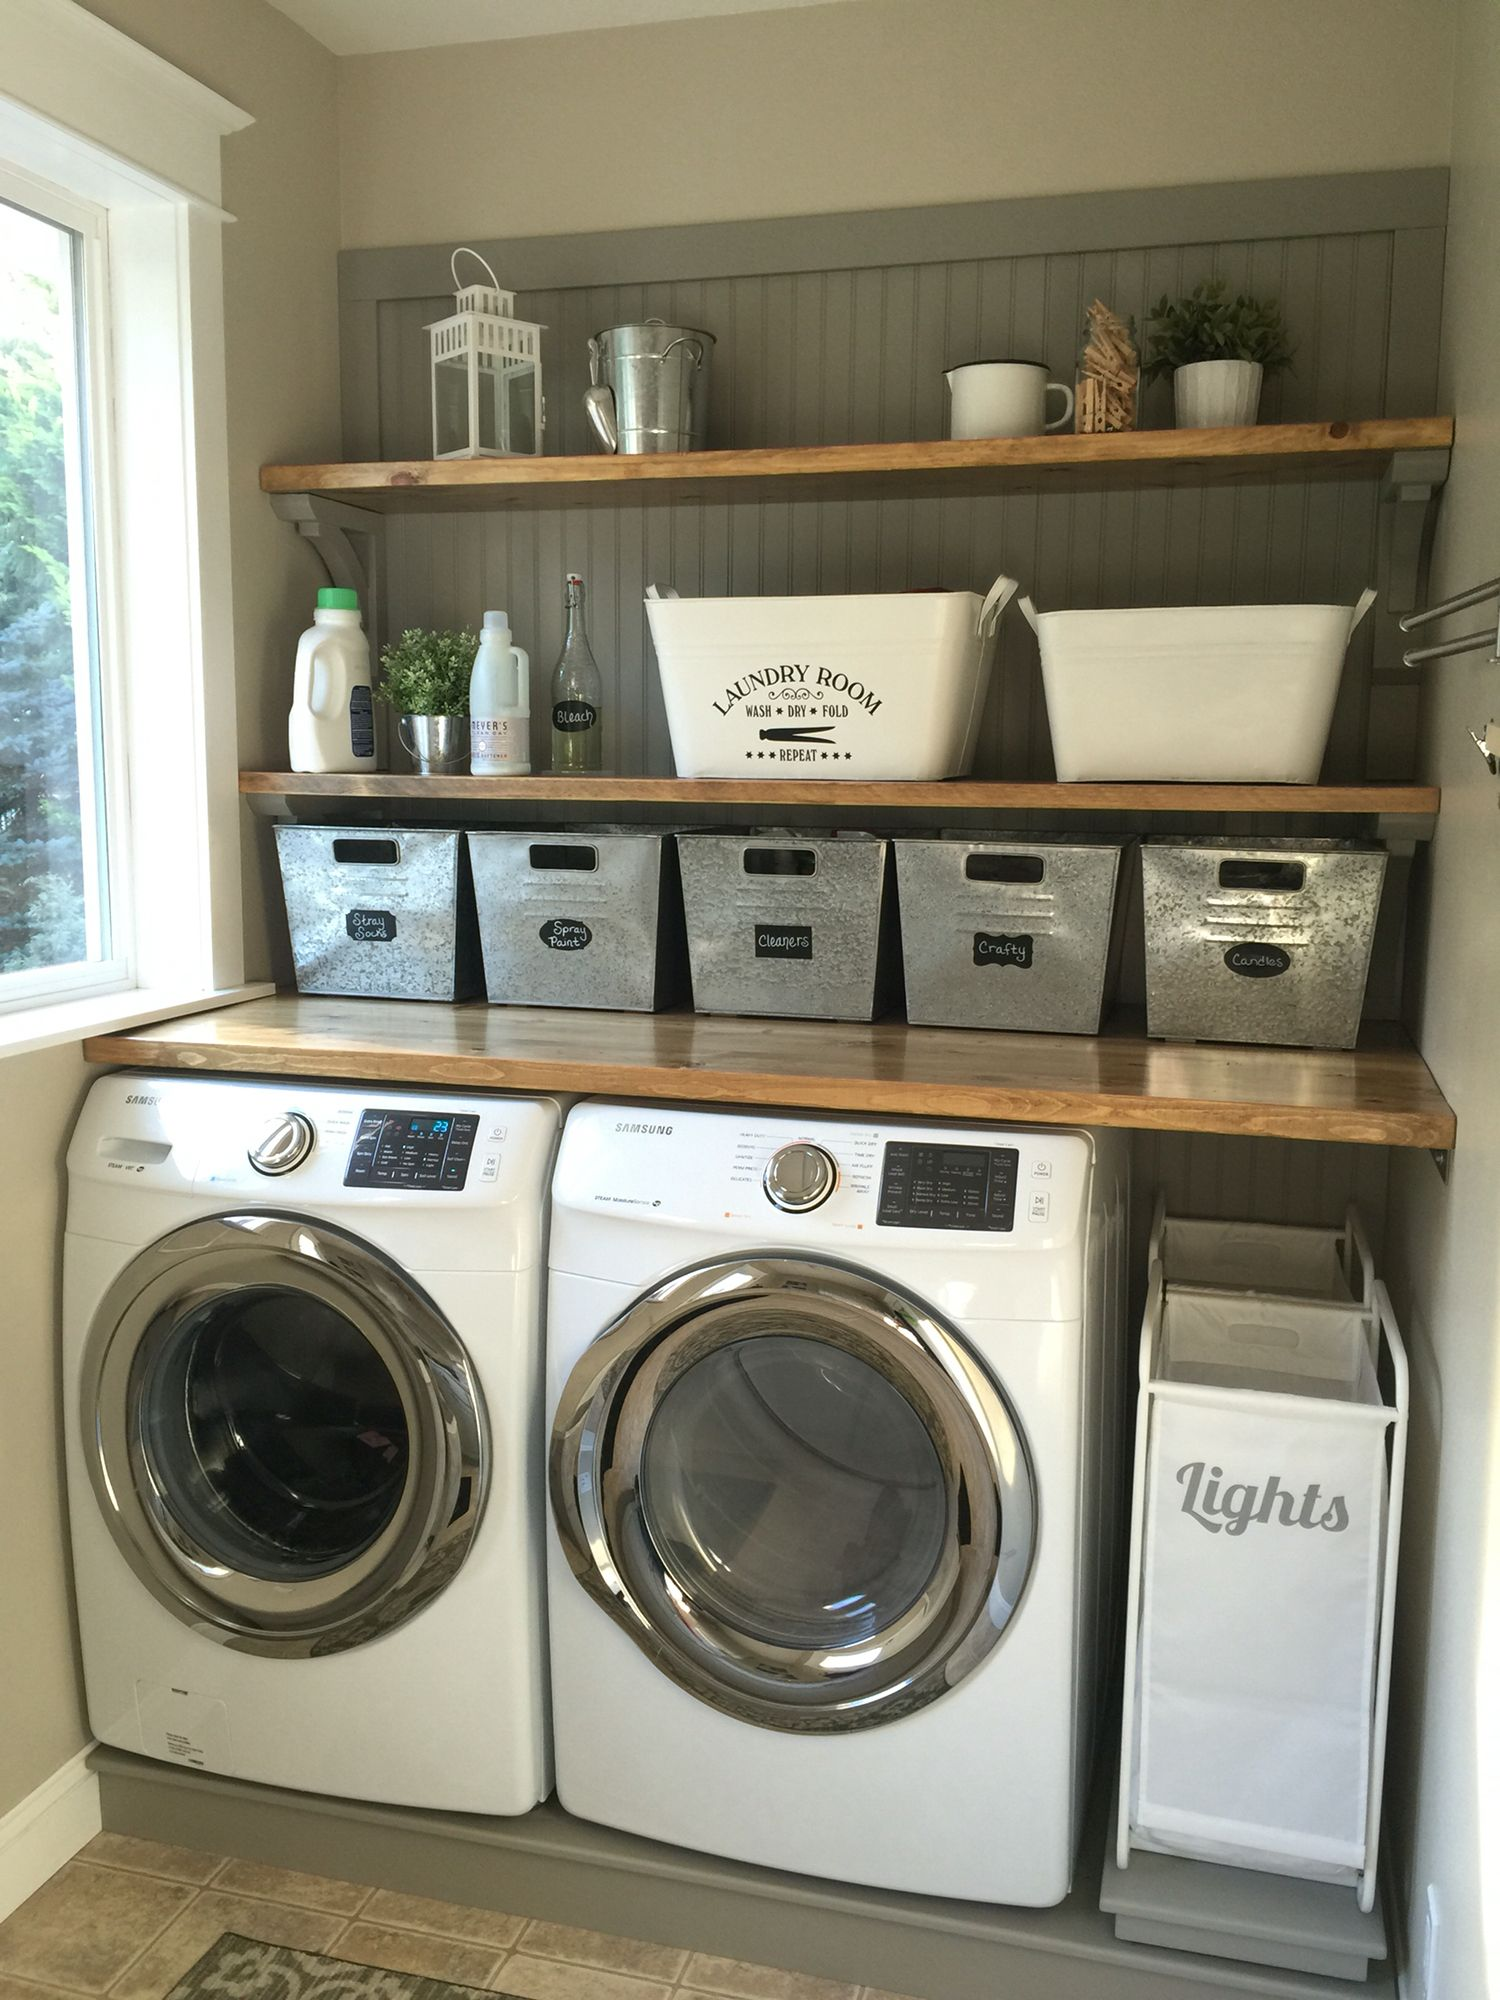 Laundry Room Ideas - Laundry room makeover. Wood counters Walmart tin totes pull out laundry bins. #laundryroommakeover : laundry room storage  - Aquiesqueretaro.Com